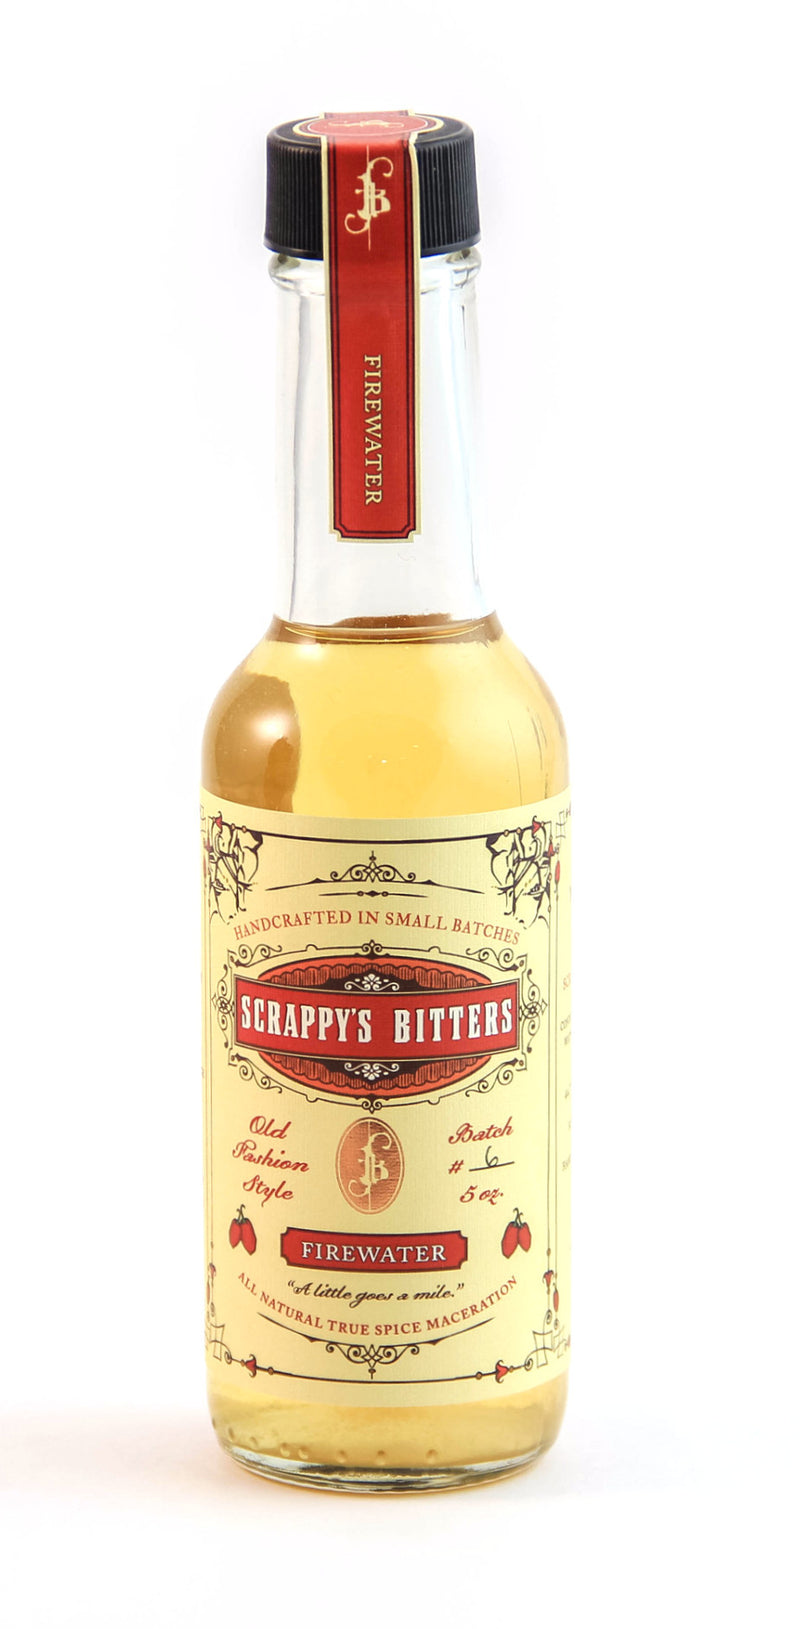 Scrappy's Firewater Bitters-Bitters, Syrups and Shrubs-The Meadow